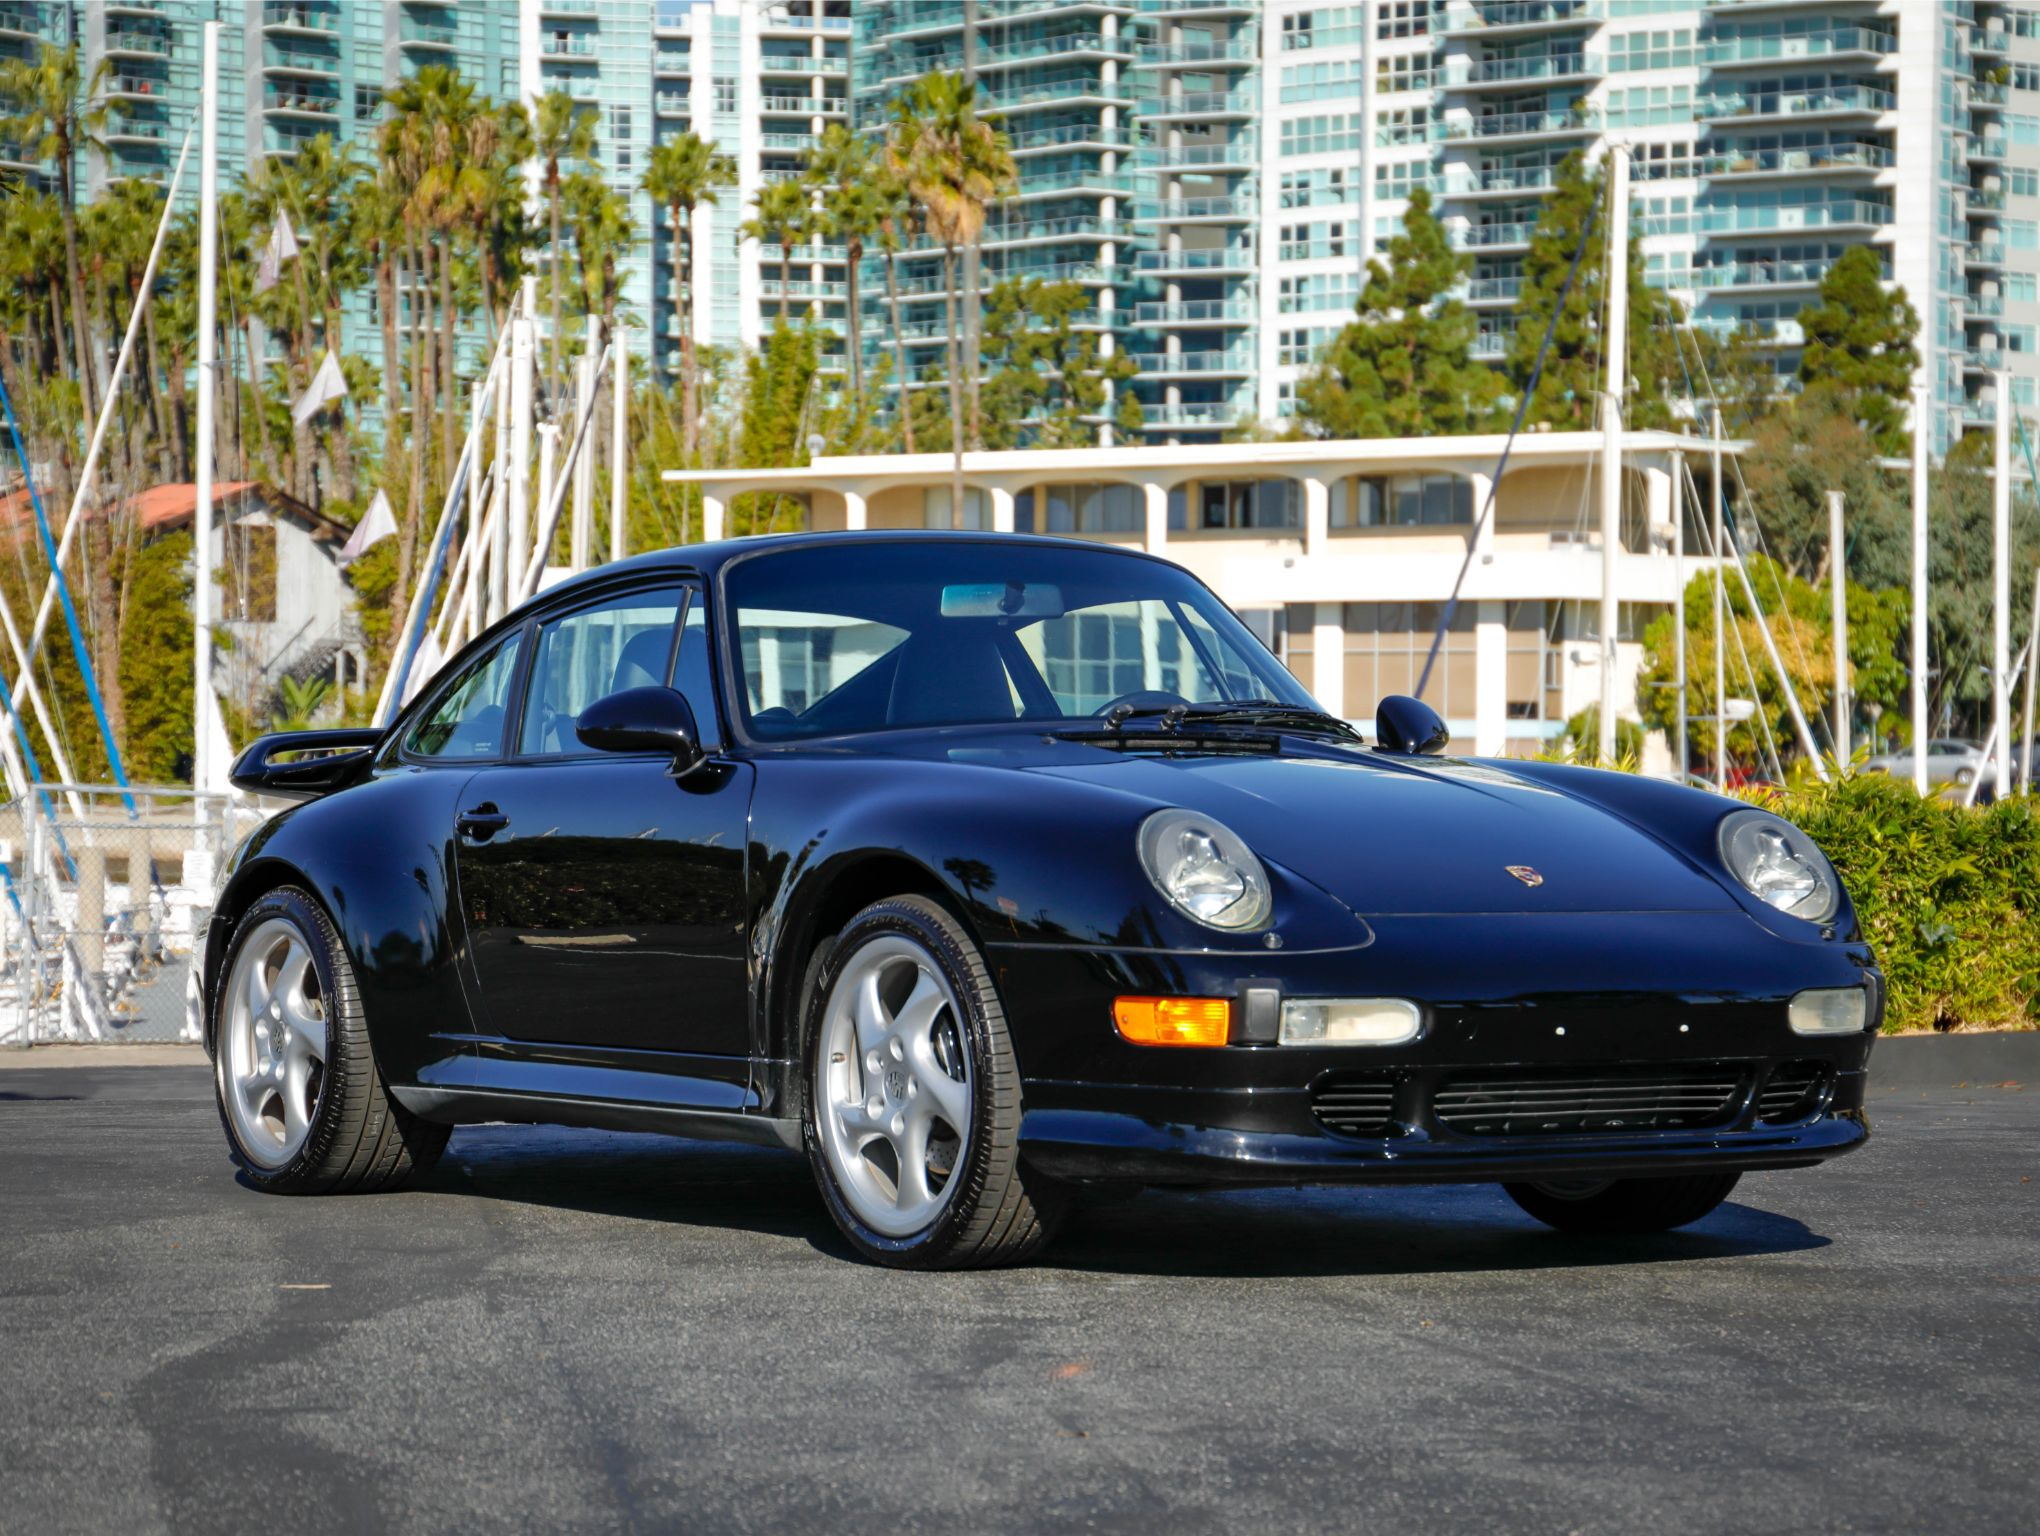 1-Owner 27K-Mile 1998 Porsche 911 Carrera S